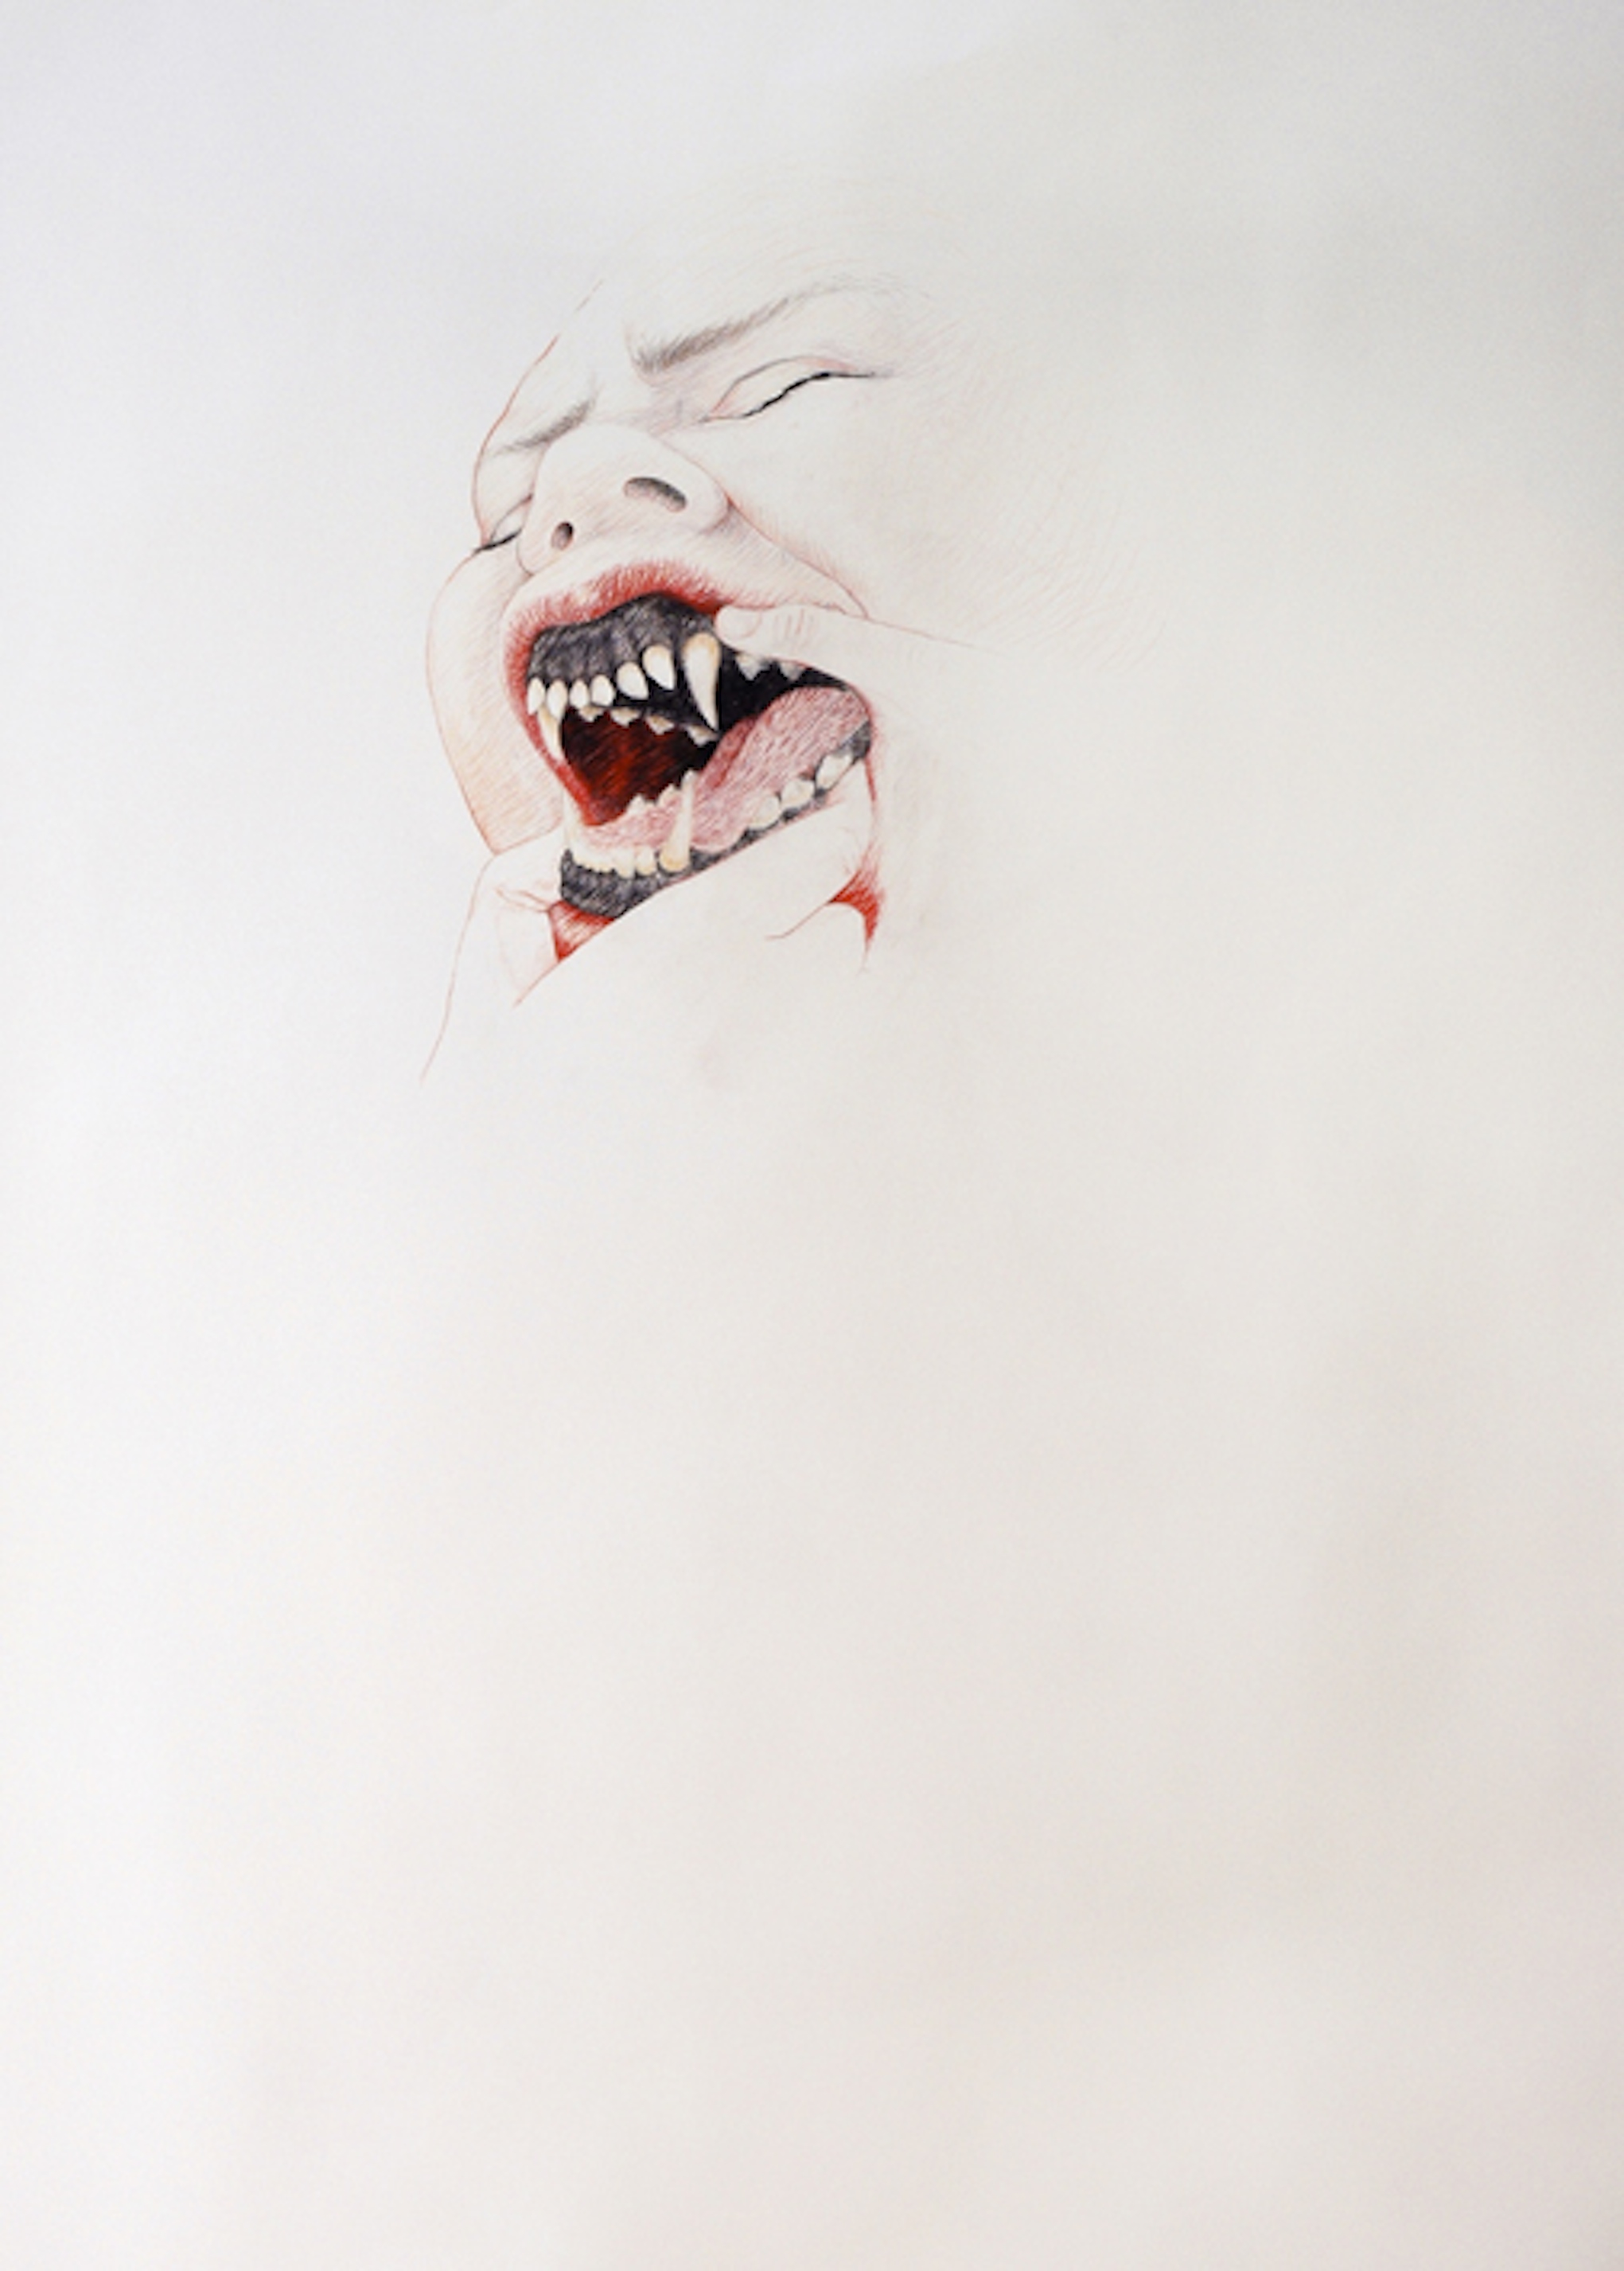 Bitt, coloured pencils on paper, 130 x 103 cm, 2009